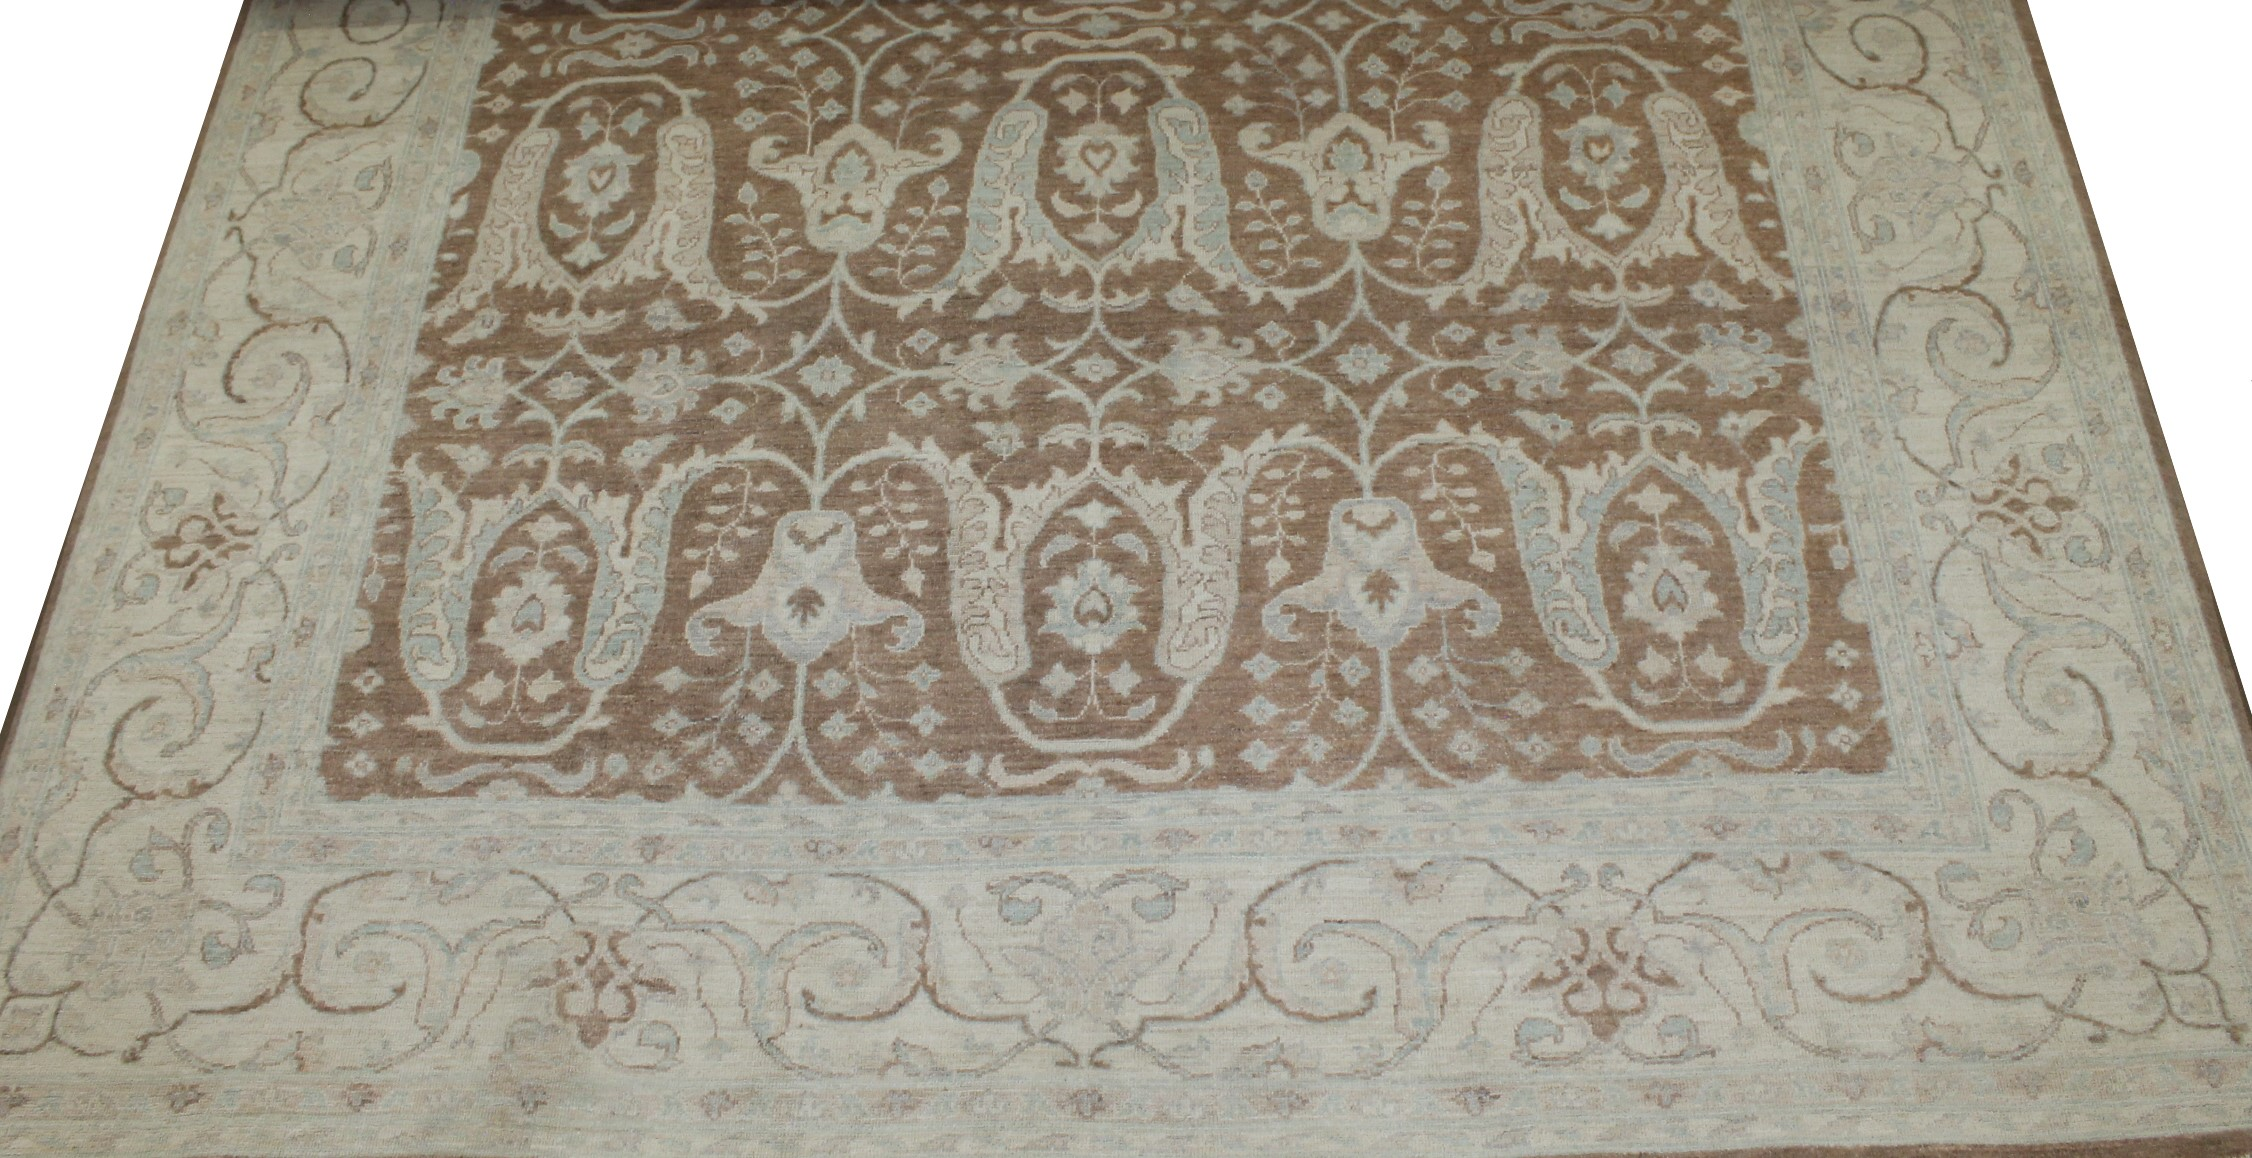 8x10 Peshawar Hand Knotted Wool Area Rug - MR21271